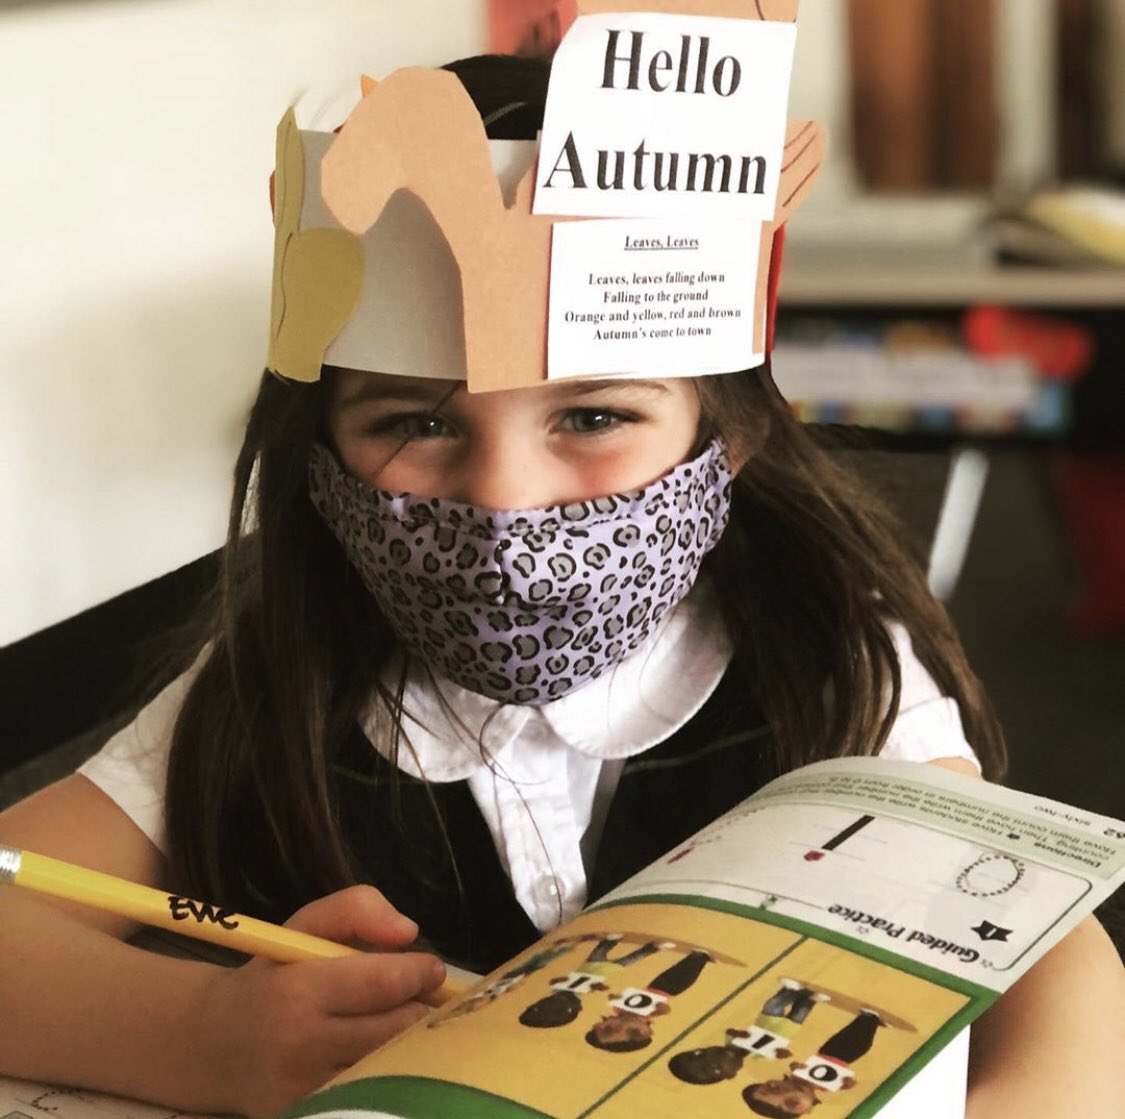 test Twitter Media - Students at @ascsnorwalk are ready for anything and everything...new school year, new season...they keep smiling!! @Diobpt @BptSup #happyfirstdayoffall #weFACEittogether https://t.co/bj2yONvZYc